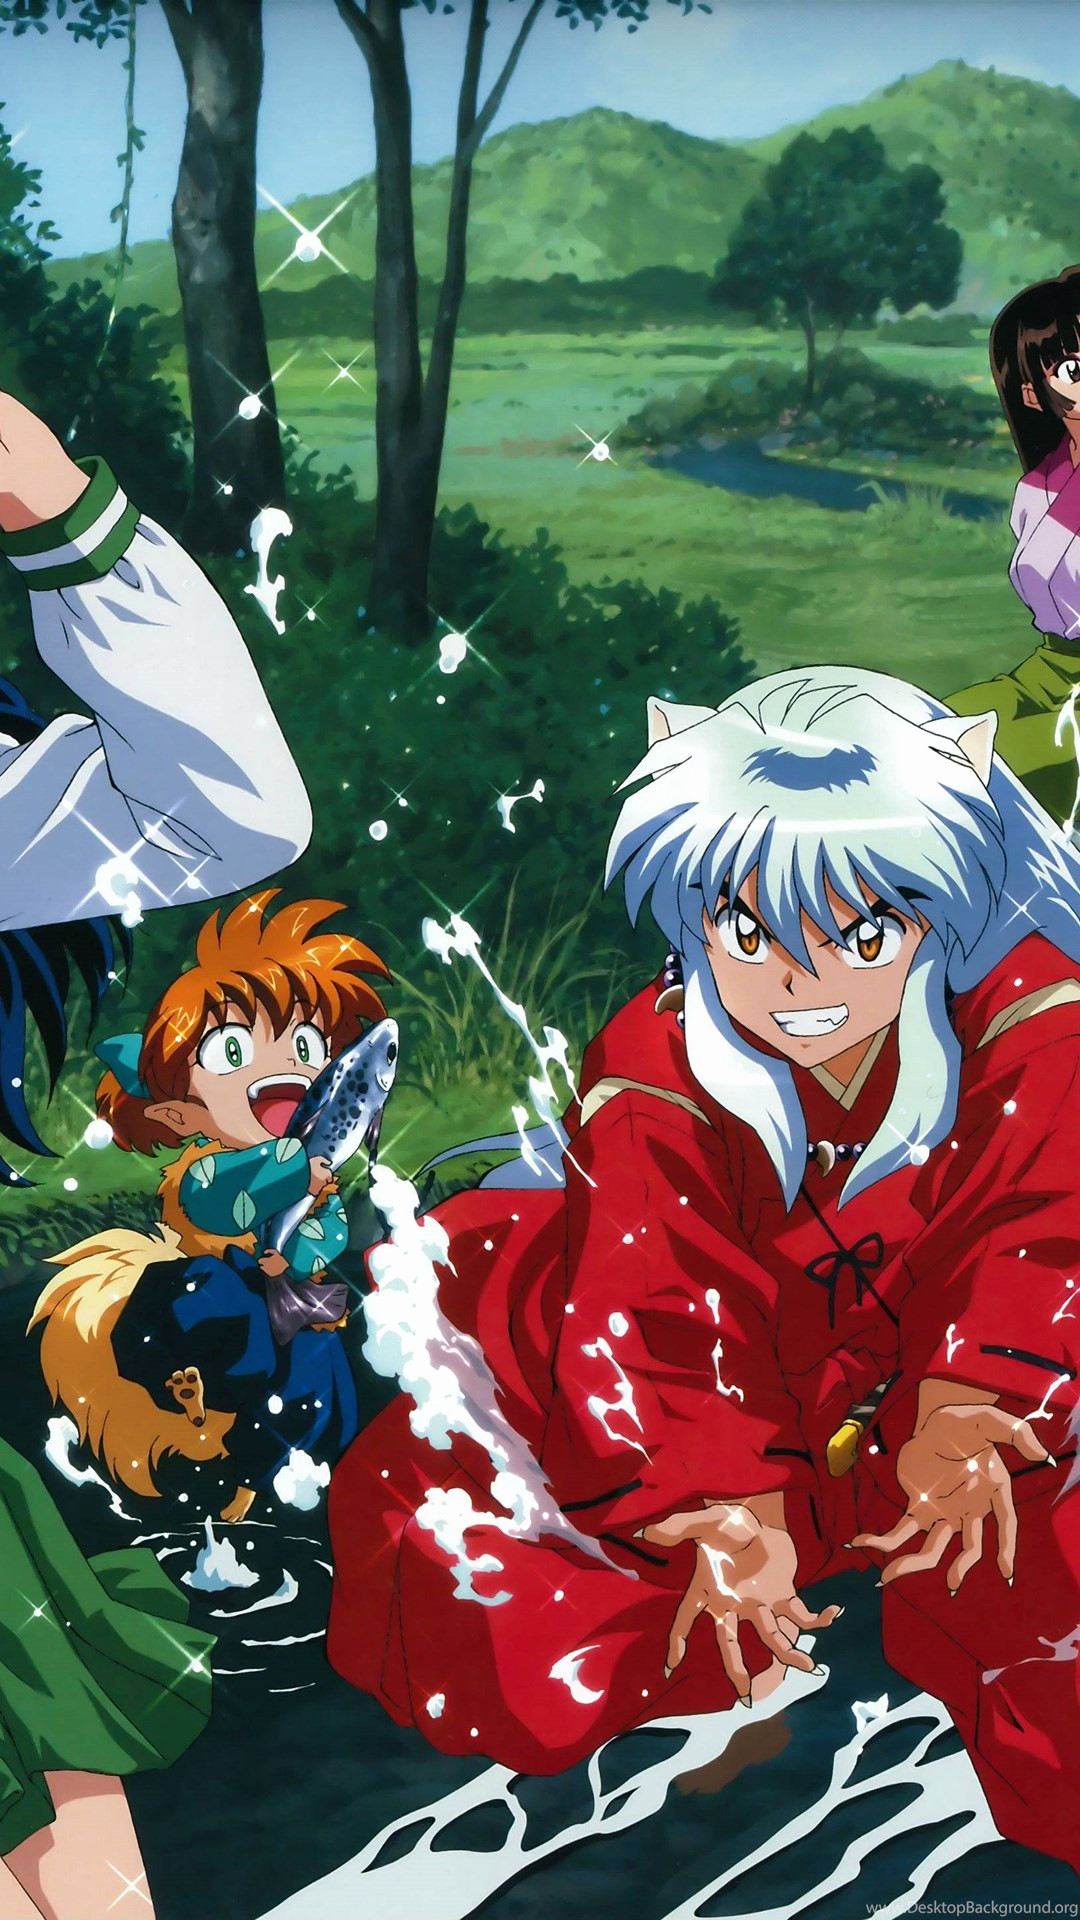 Res: 1080x1920, Inuyasha and Kagome Wallpaper – Inuyasha Hd Wallpapers Ampquotampquot Page  0 Desktop Background